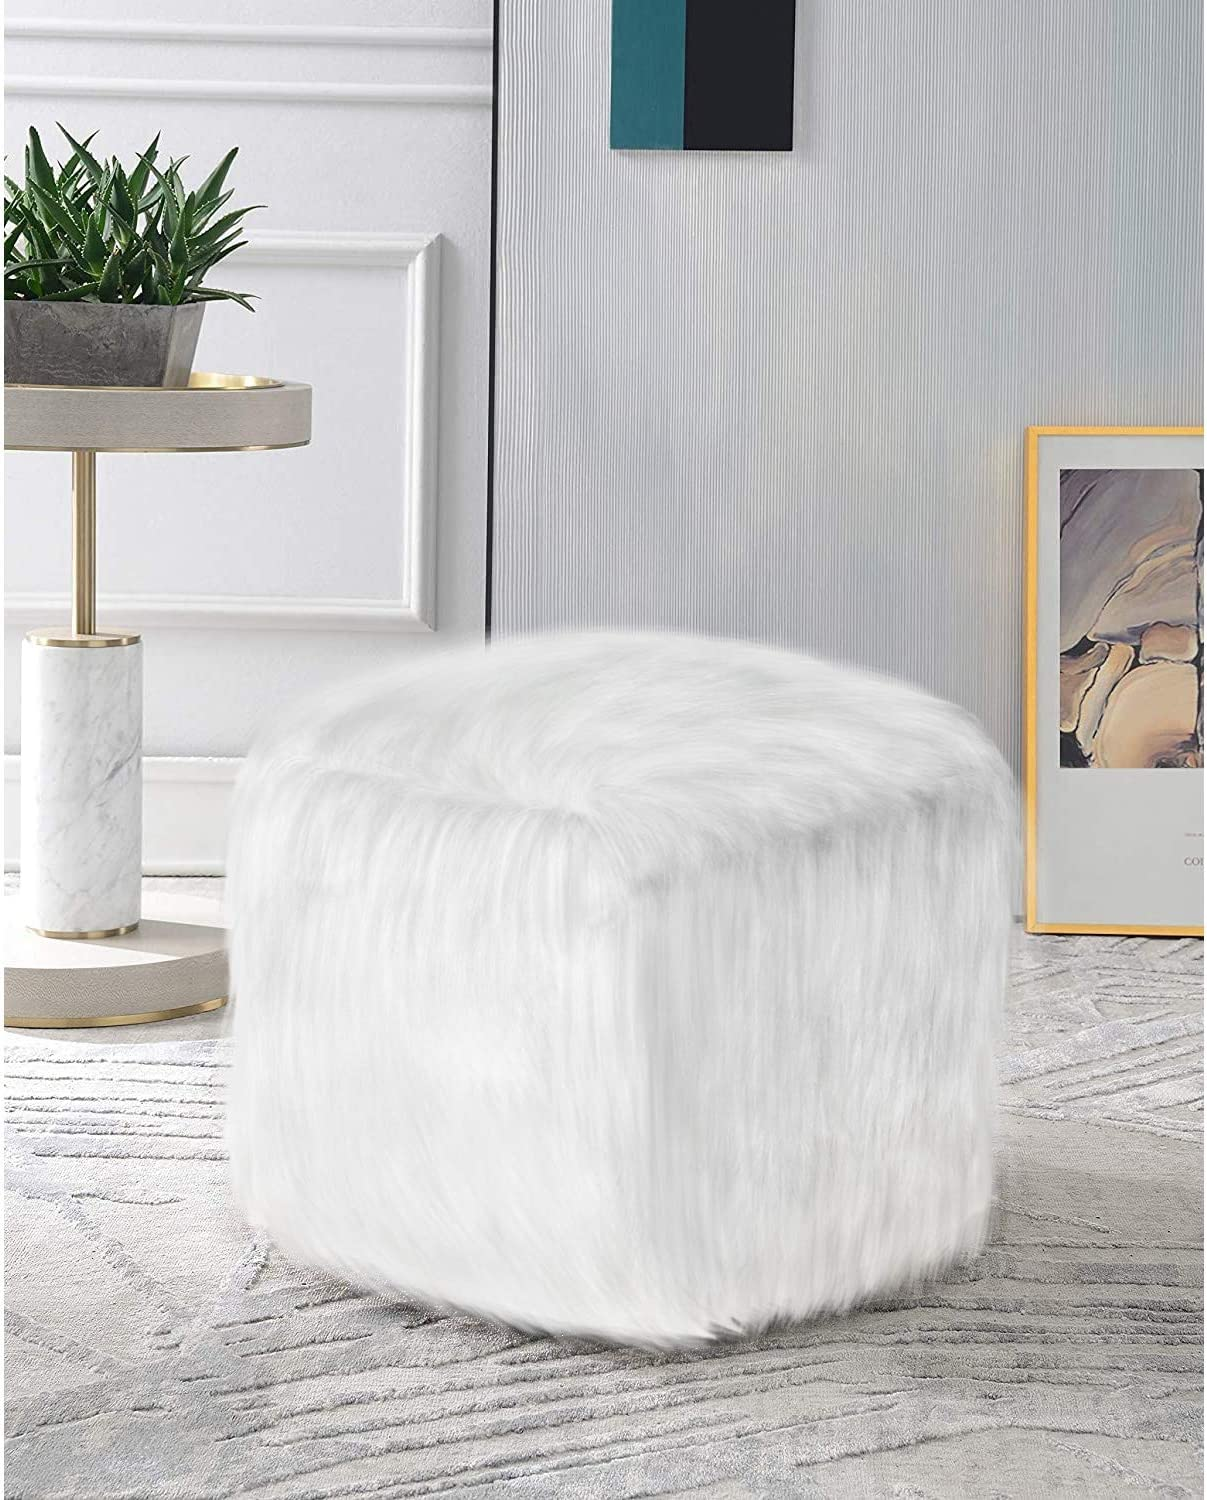 MOTINI Fuzzy Pouf White, Ottoman Pouf Footstool Faux Fur Bean Bag for Living Room, Bedroom, Home, Office, 18